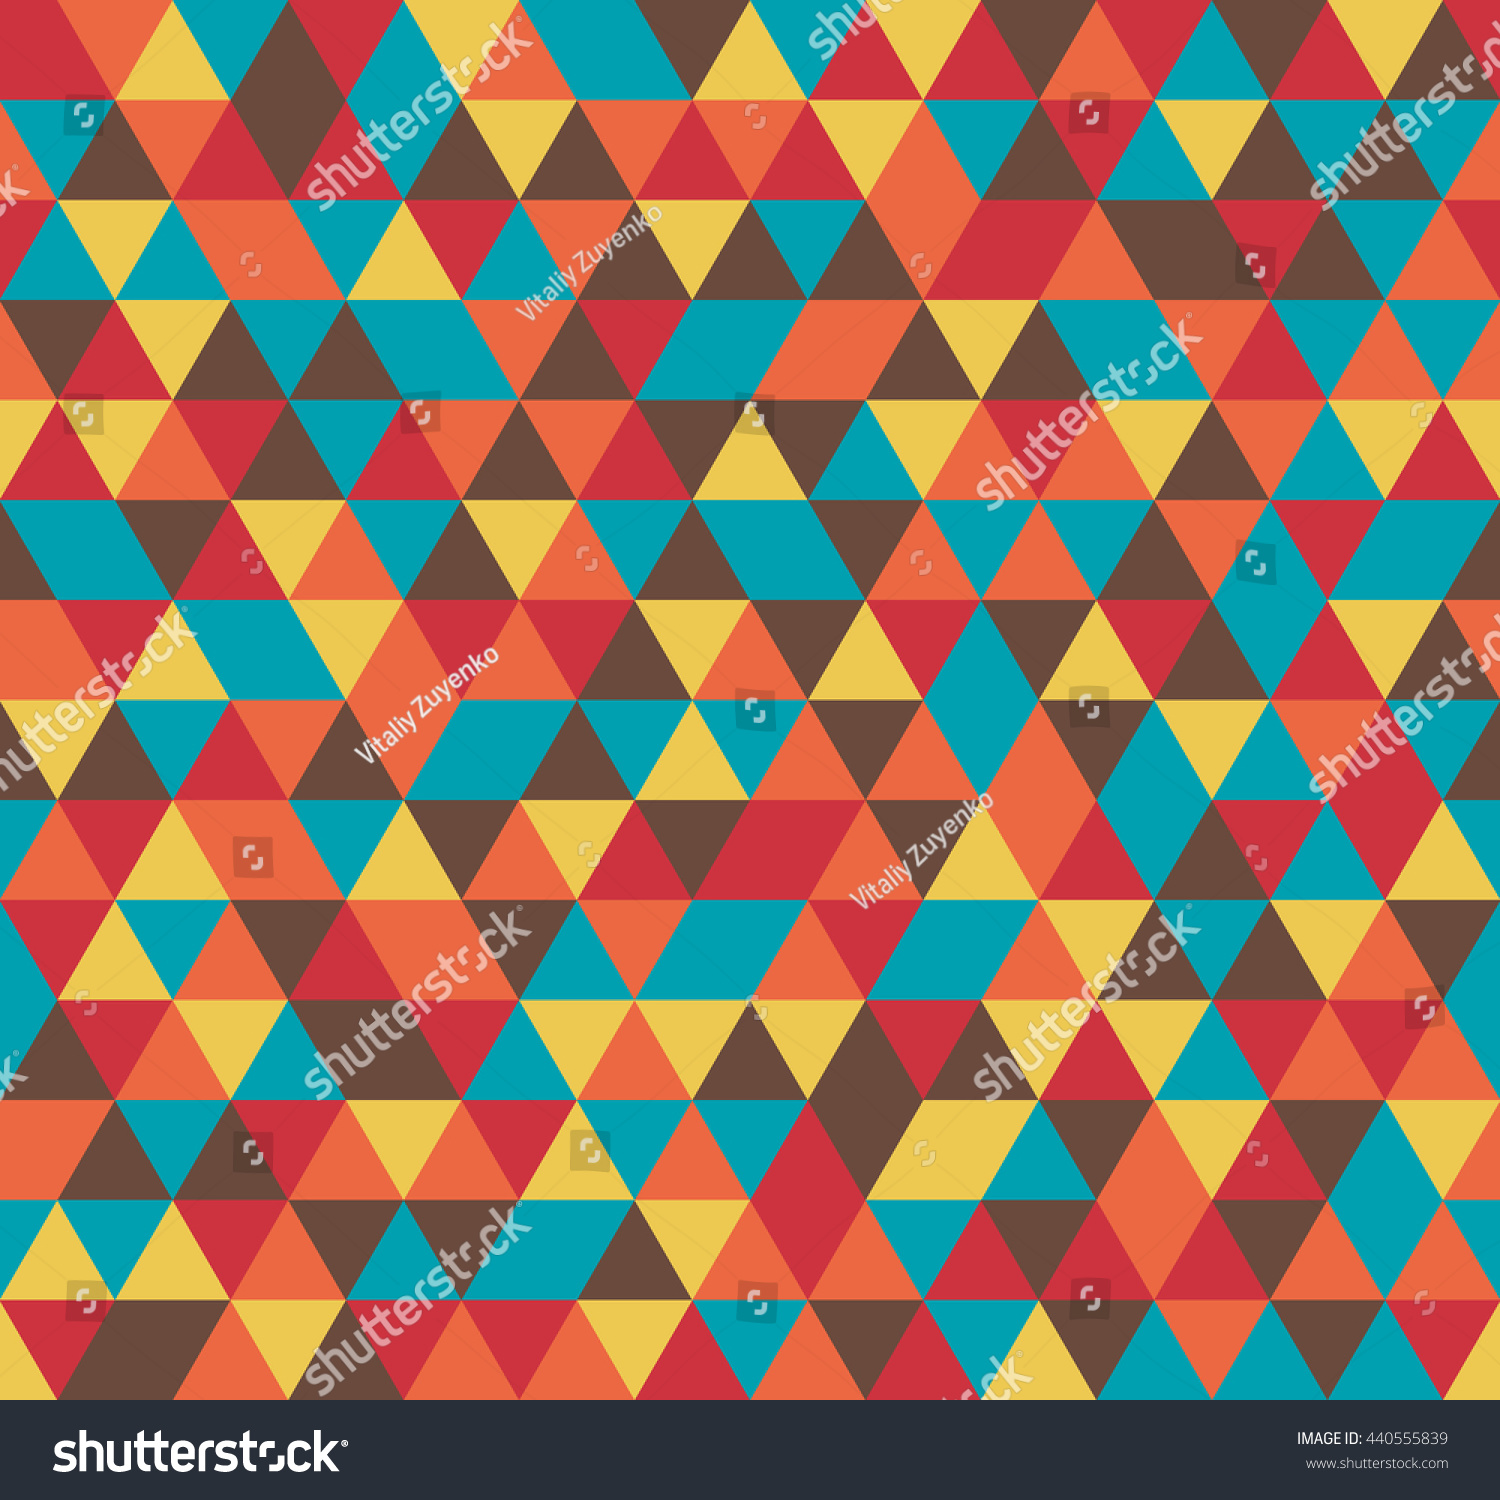 Colorful Tile Vector Background Illustration Triangle Stock Vector ...